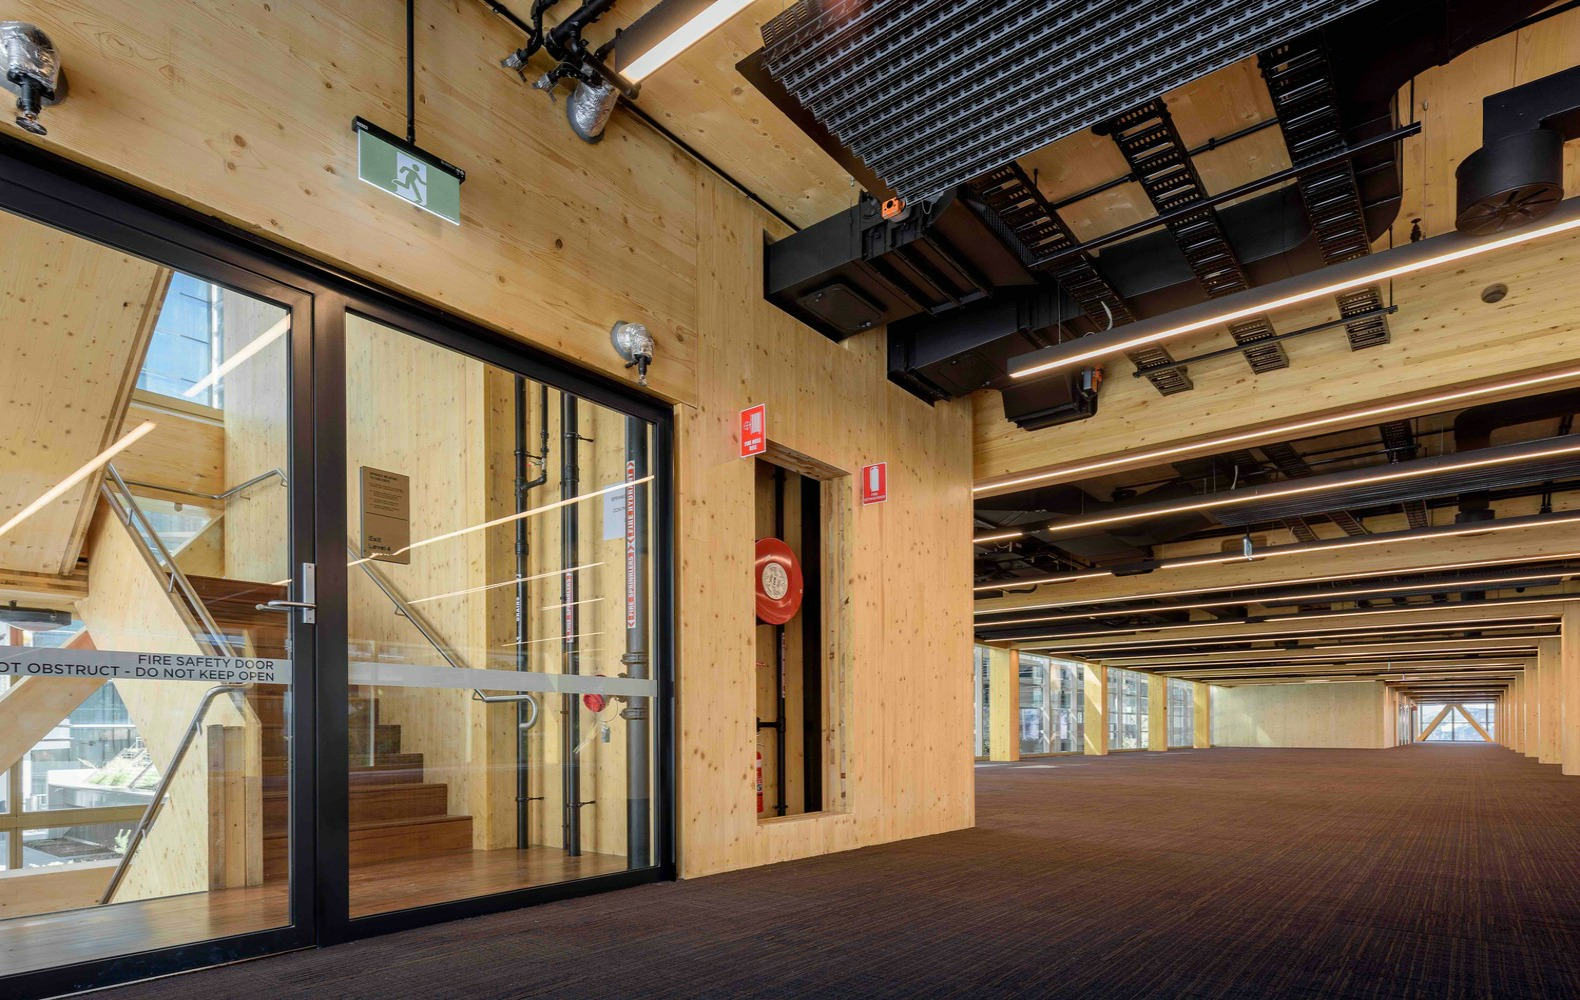 Australia S Largest Commercial Timber Building Rises In